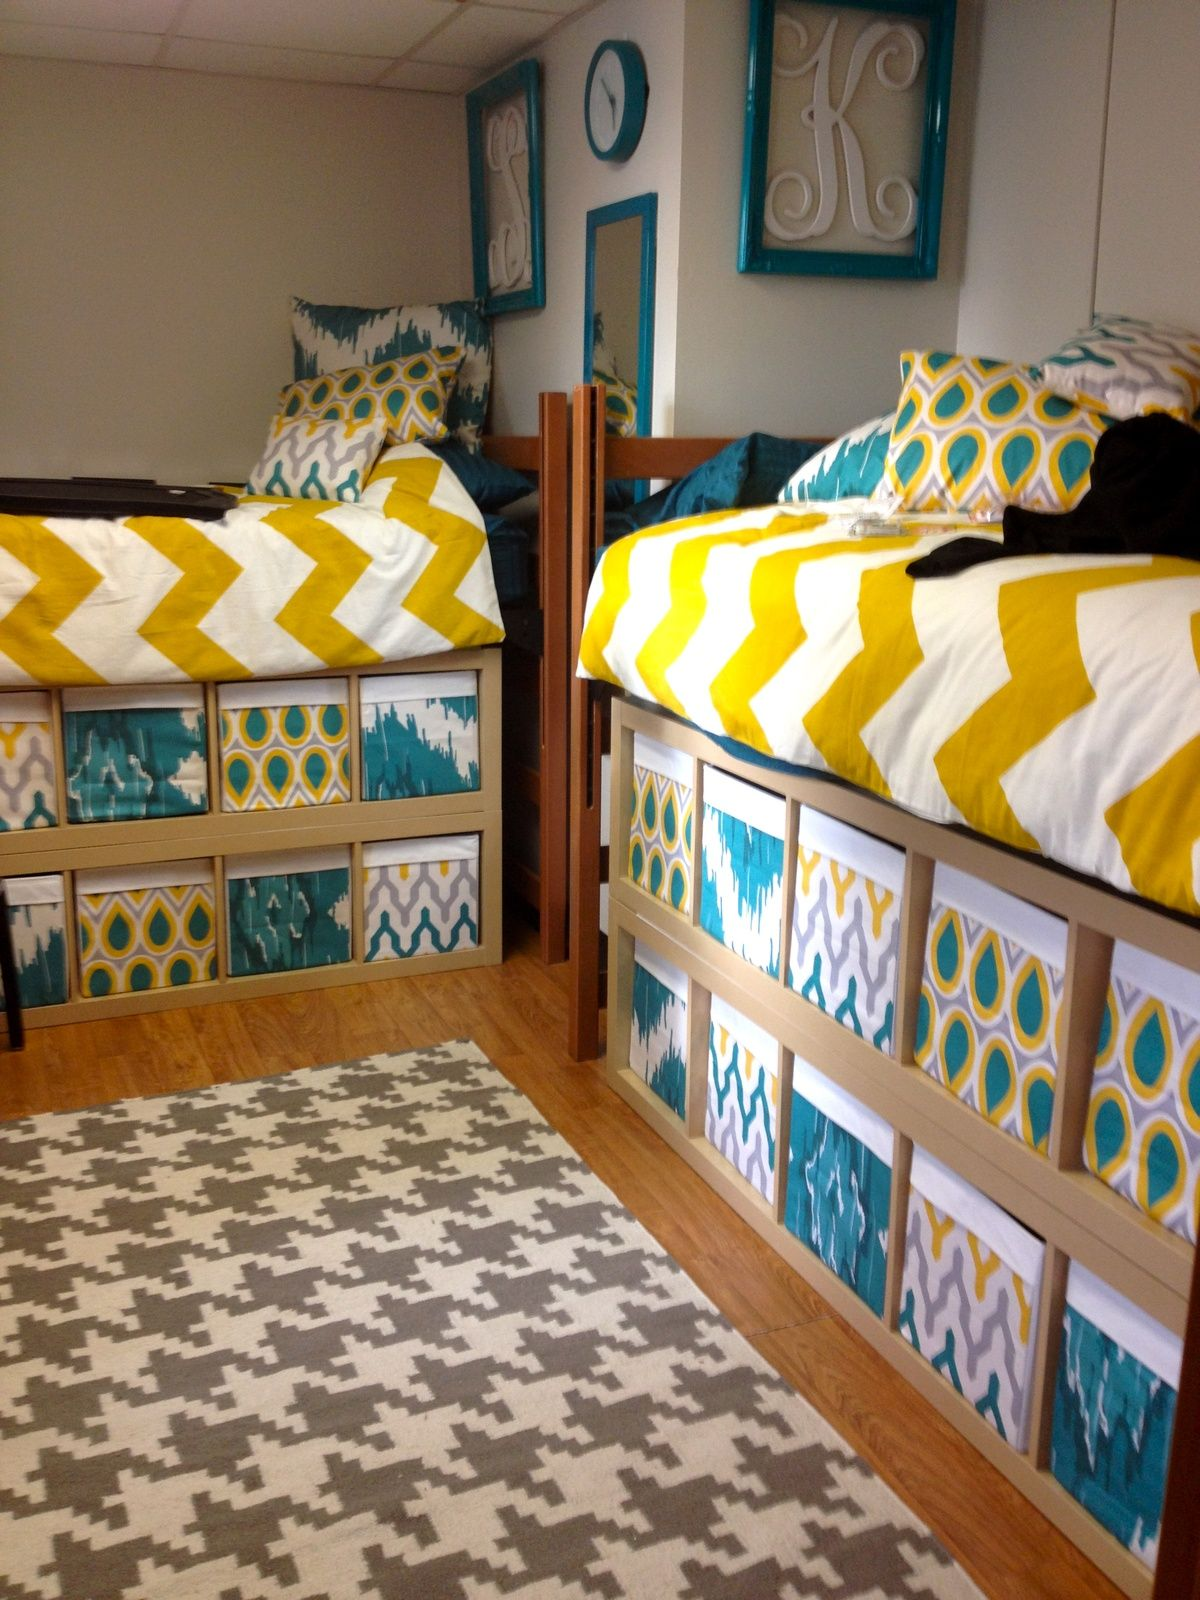 Dorm decorating ideas pinterest - Find This Pin And More On Decor Cute College Dorm Bedding Ideas